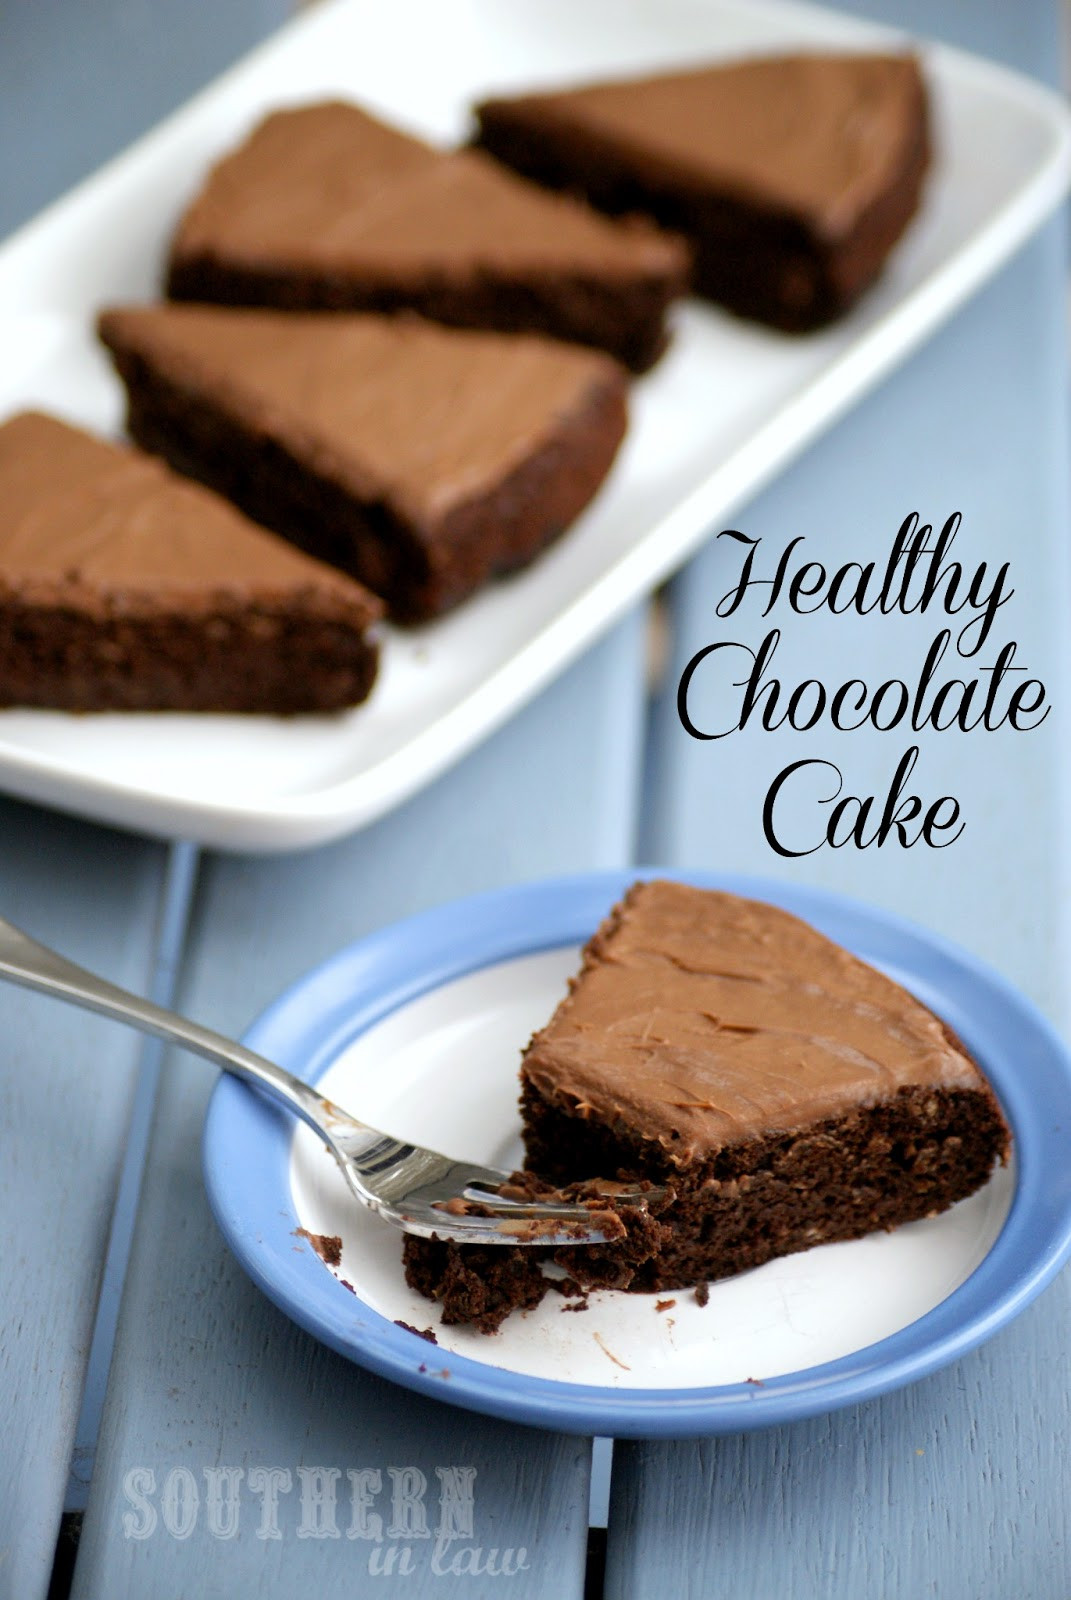 Low Calorie Vegan Desserts  Southern In Law Recipe Healthy Chocolate Cake Vegan too